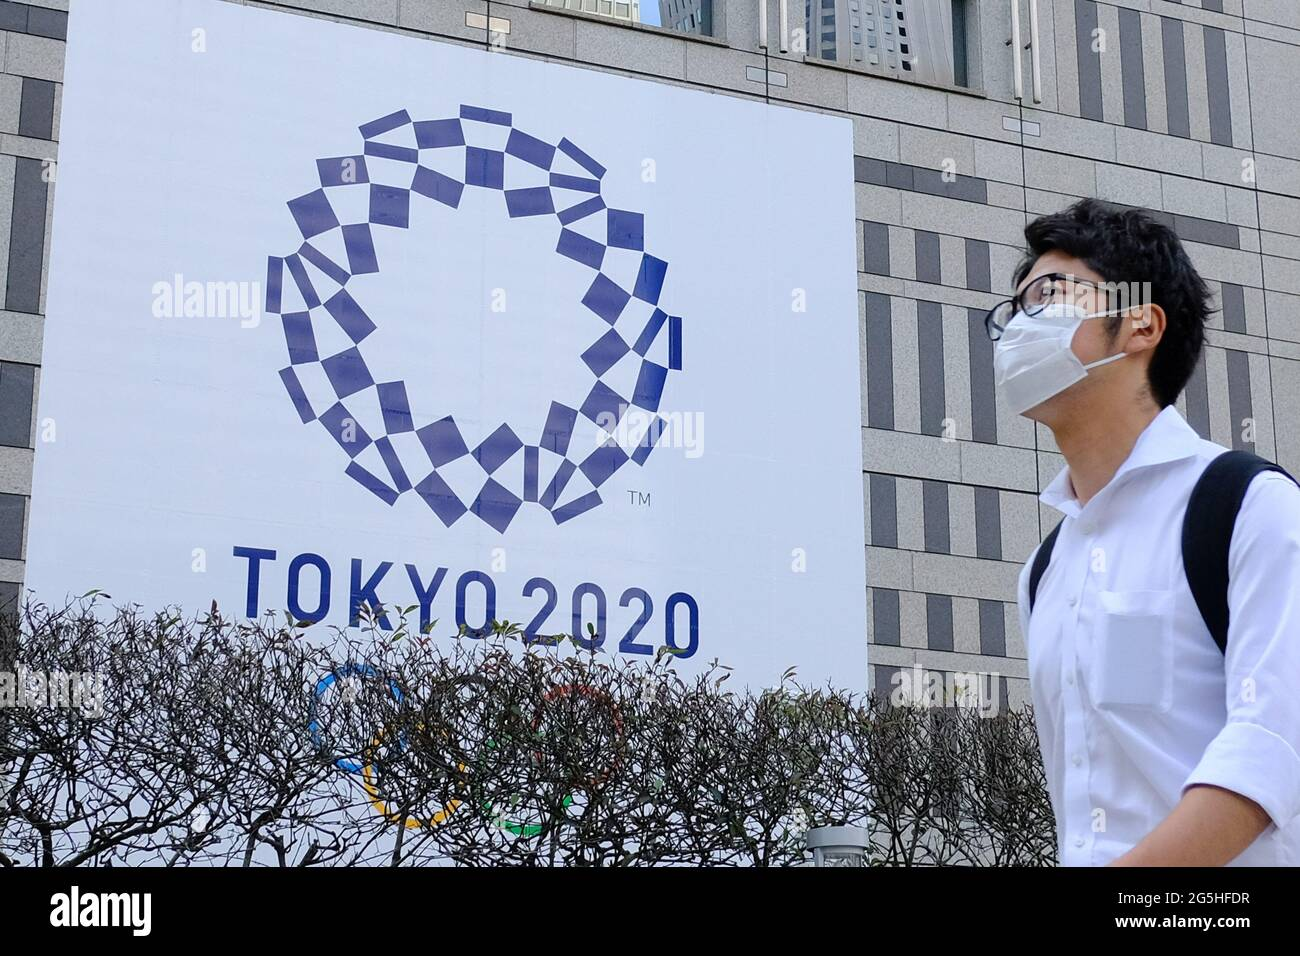 Tokyo, Japan. 25th June, 2021. A man wearing a face mask as a preventive measure against the spread of coronavirus walks past a banner for the upcoming Tokyo 2020 Olympics in front of the Tokyo Metro Government building. Credit: James Matsumoto/SOPA Images/ZUMA Wire/Alamy Live News Stock Photo